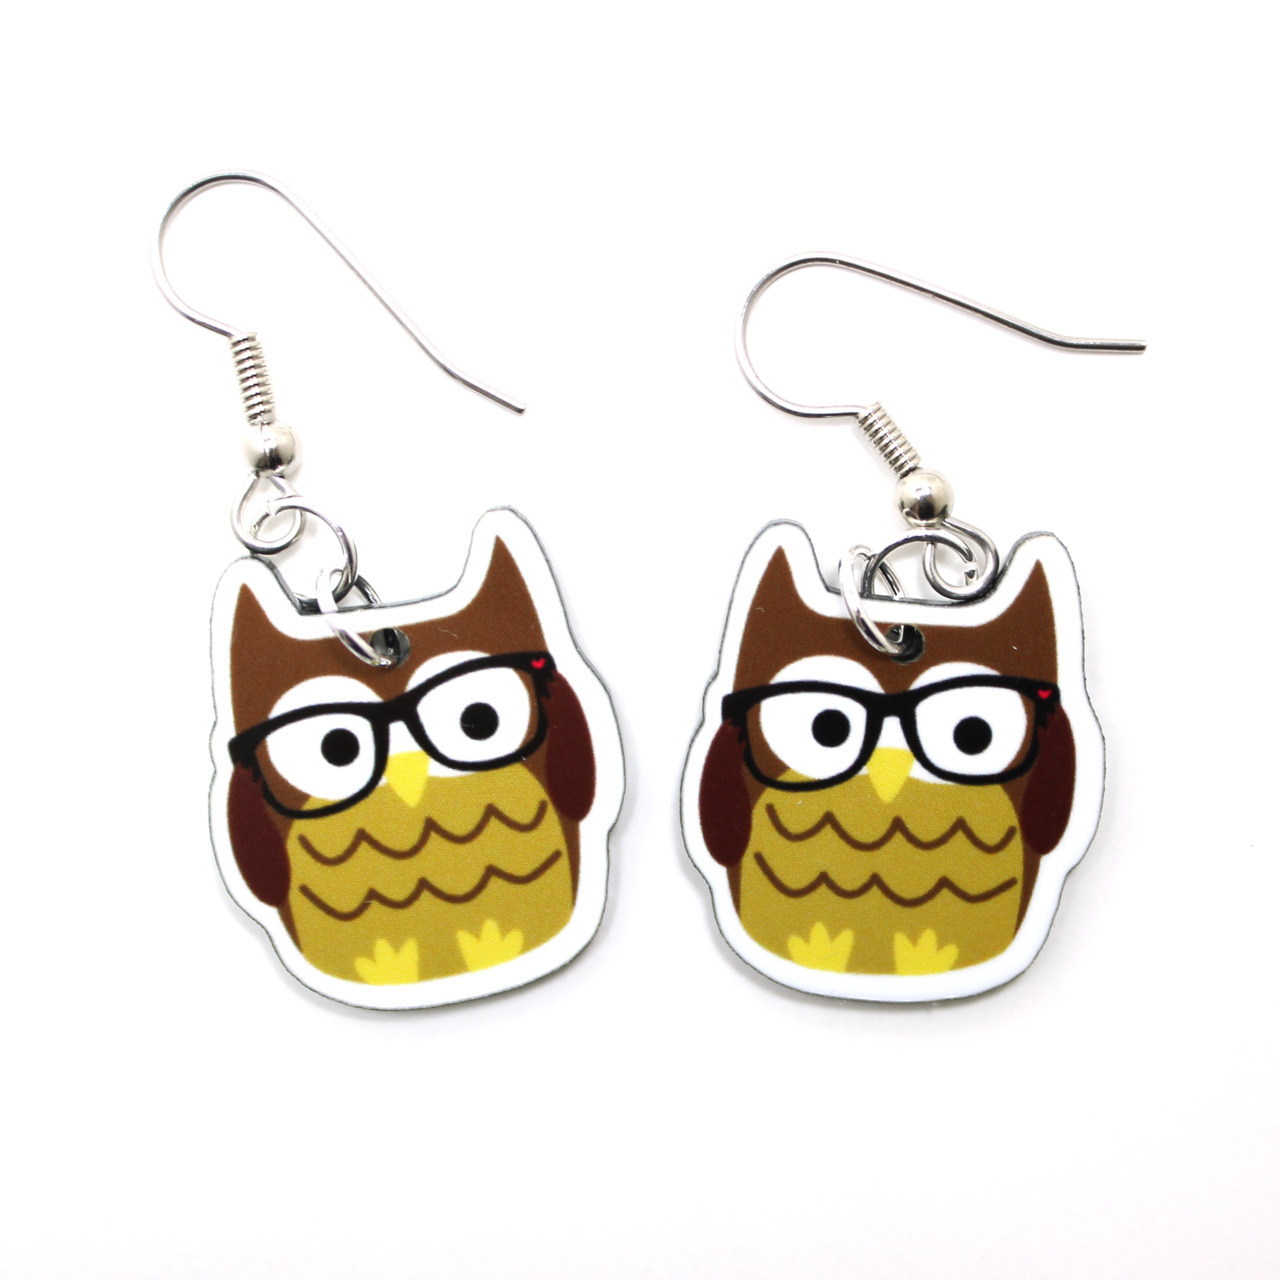 New in the shop: Nerdy Owl Earrings